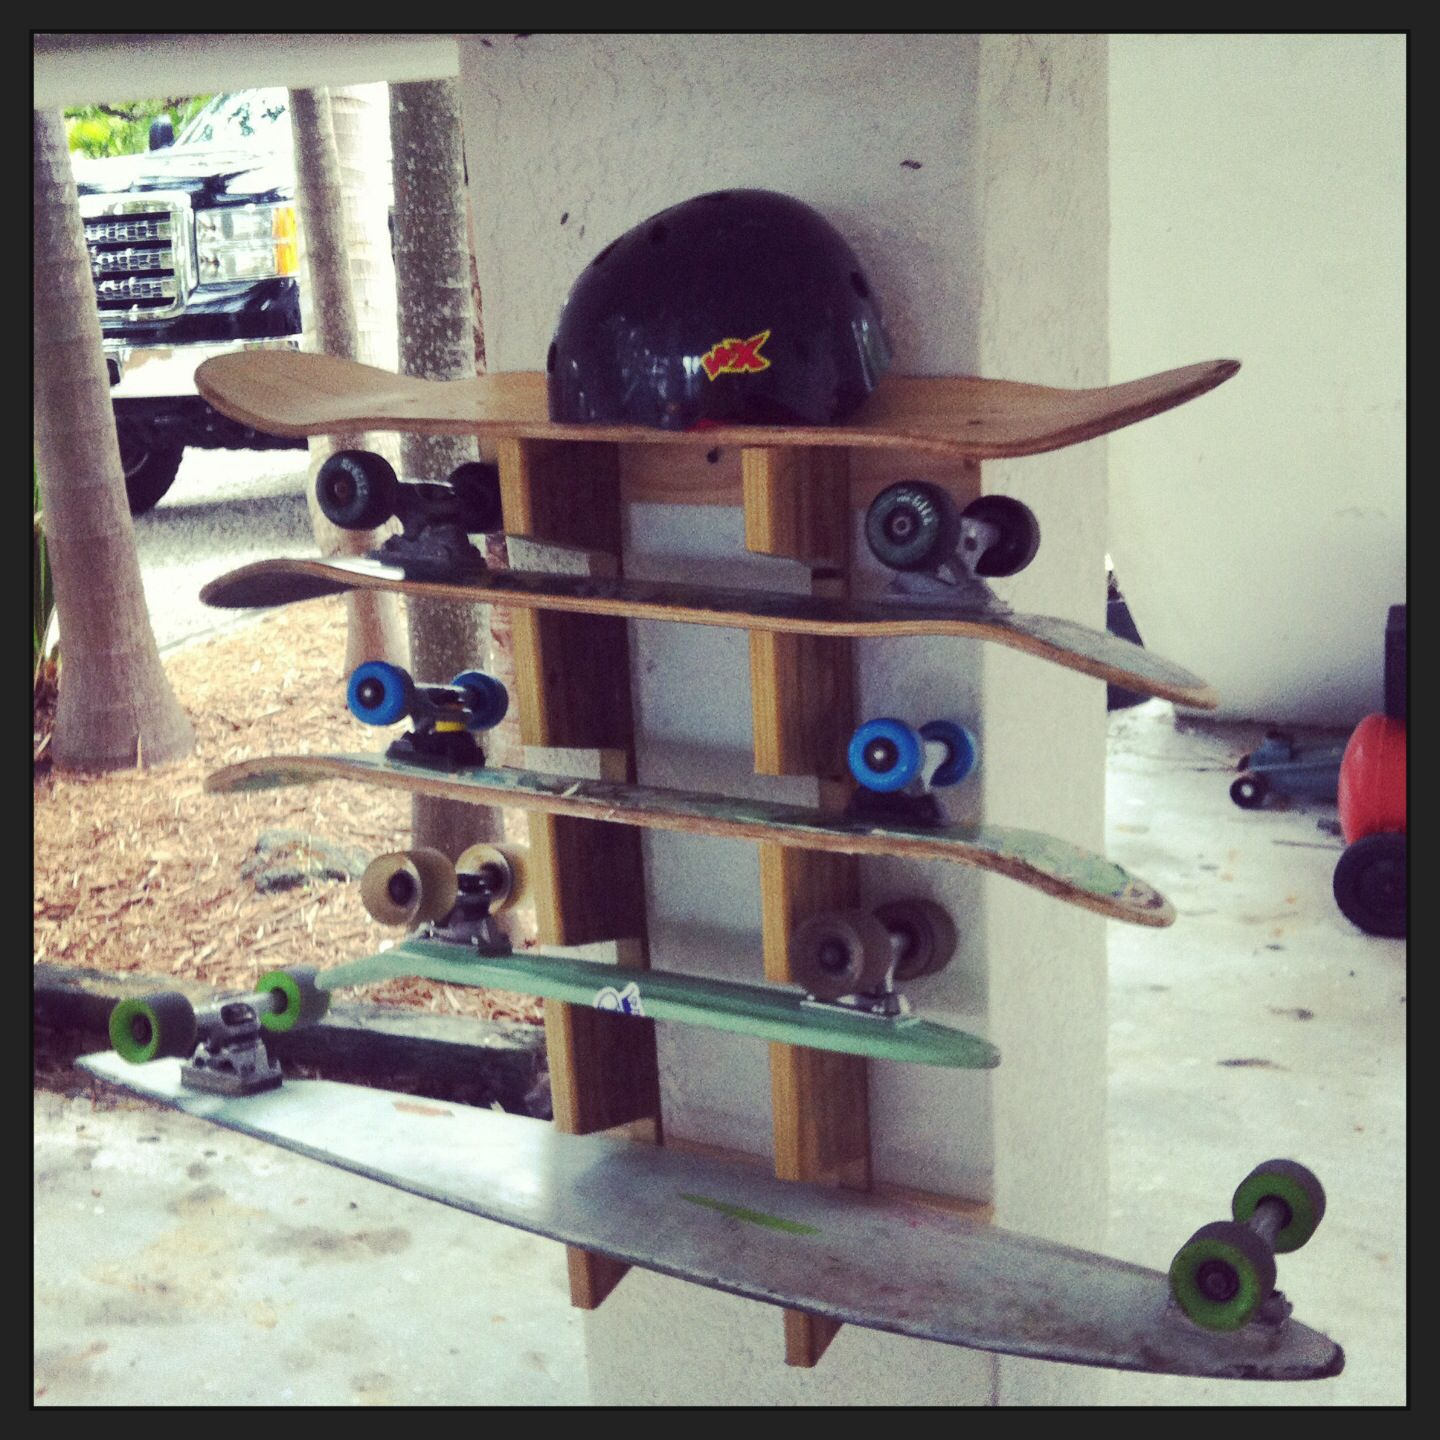 cool skateboard wall shelves ideas | DIY Skateboard Rack. | Homemade | Skateboard rack ...